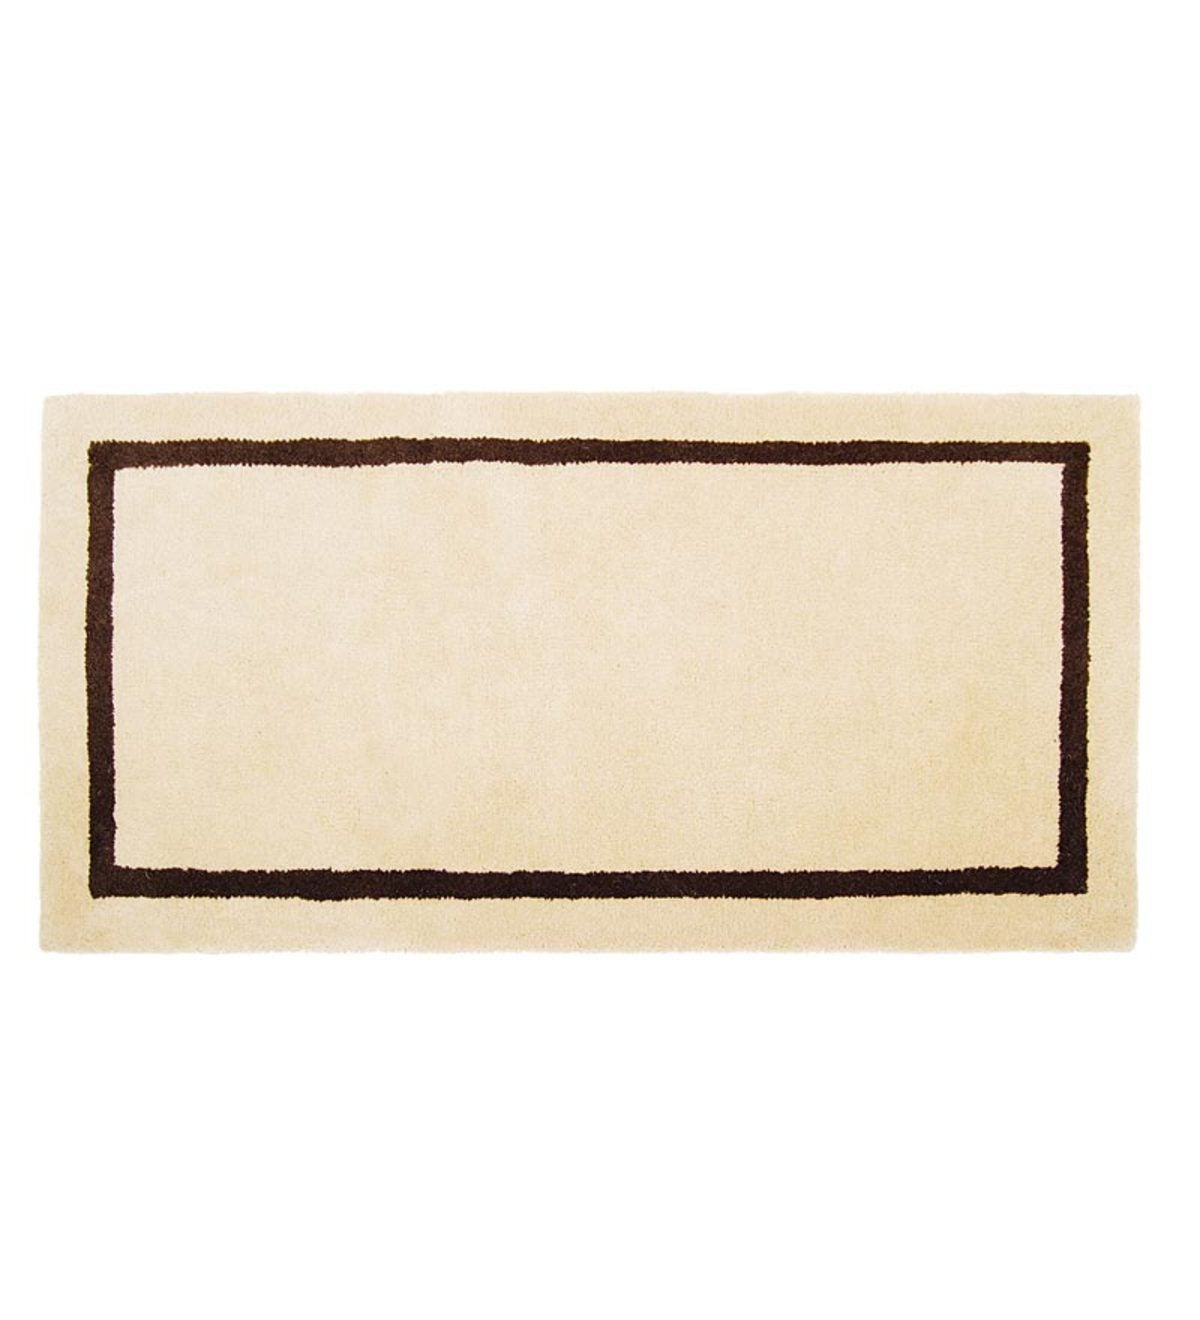 Rectangular Banded Wool Hearth Rug - Red